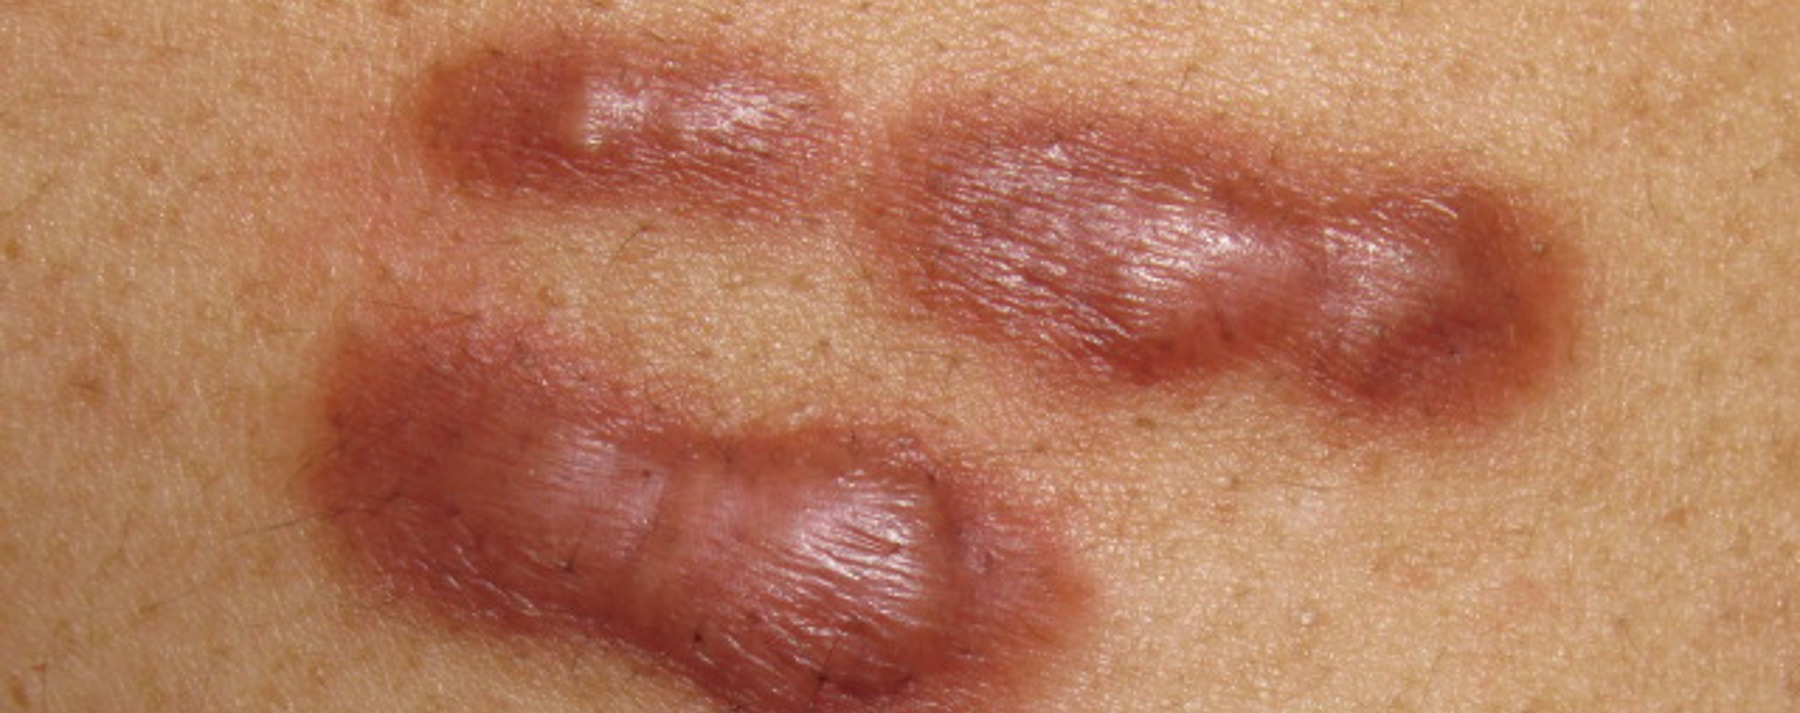 Dealing with keloid scars